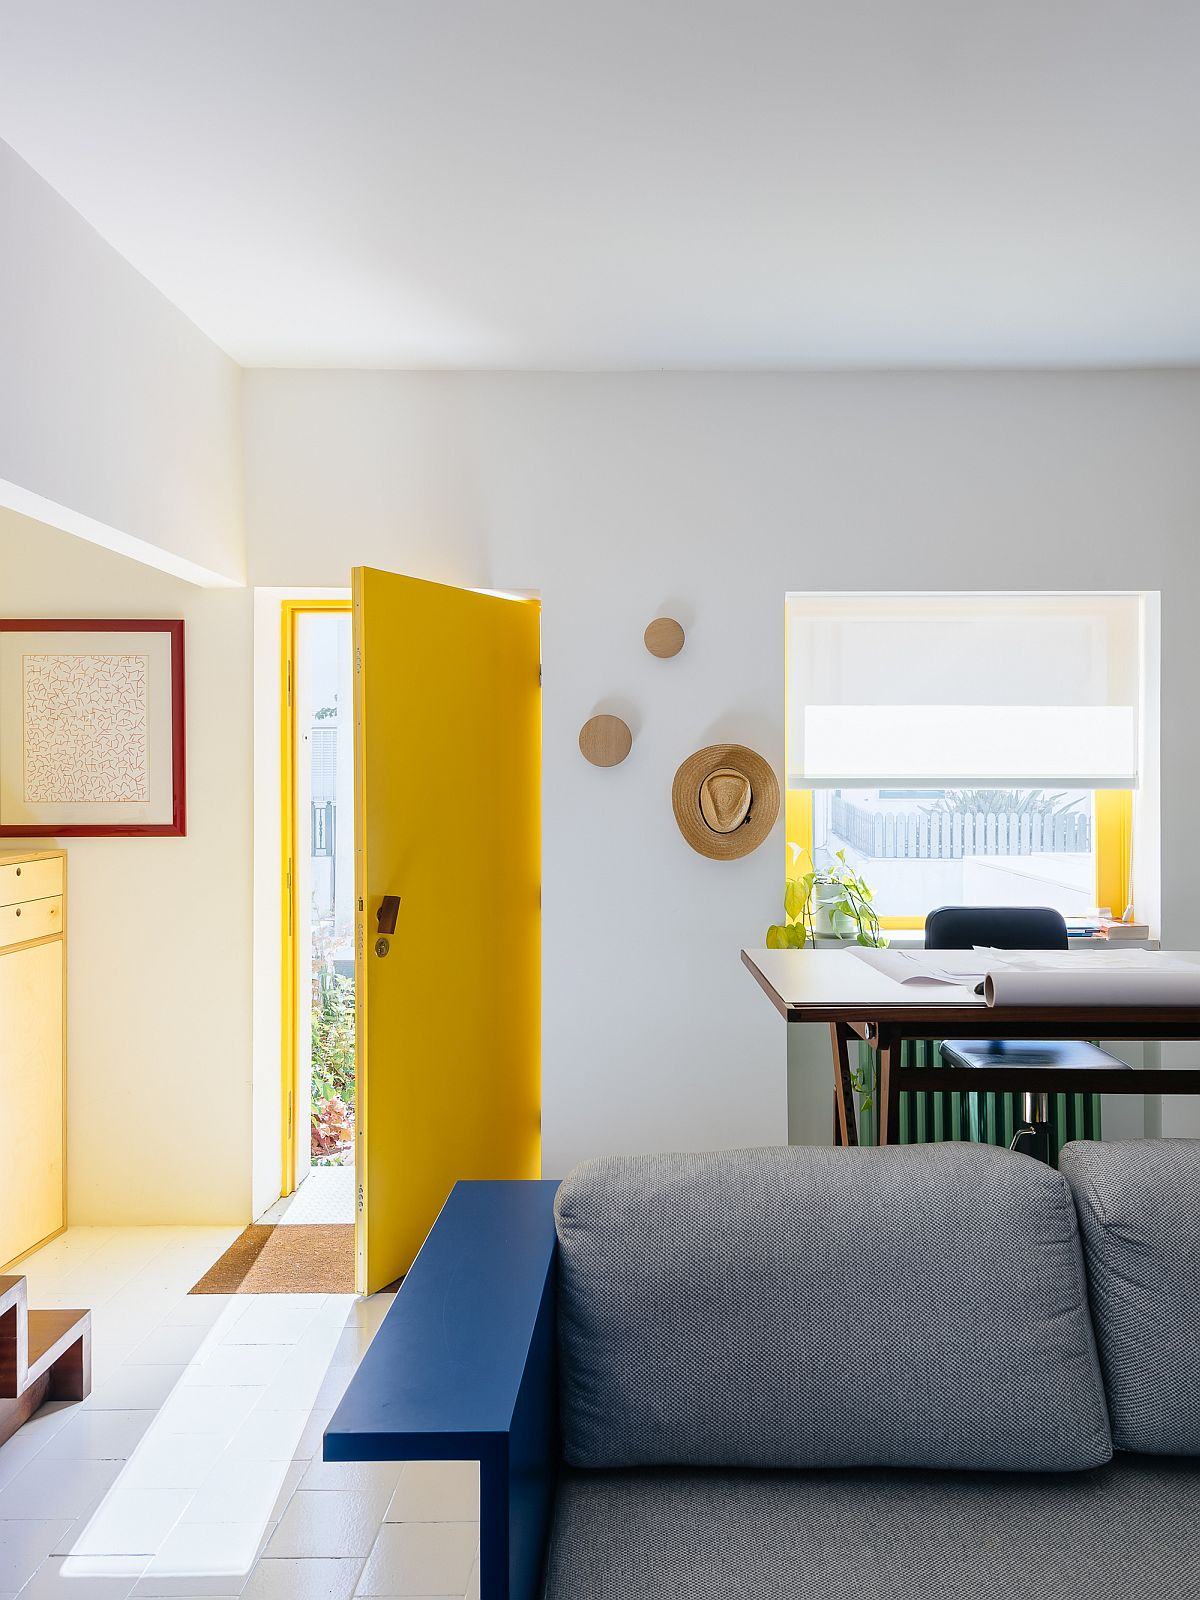 Balance-between-neutral-backdrop-and-bold-colors-inside-the-house-46949